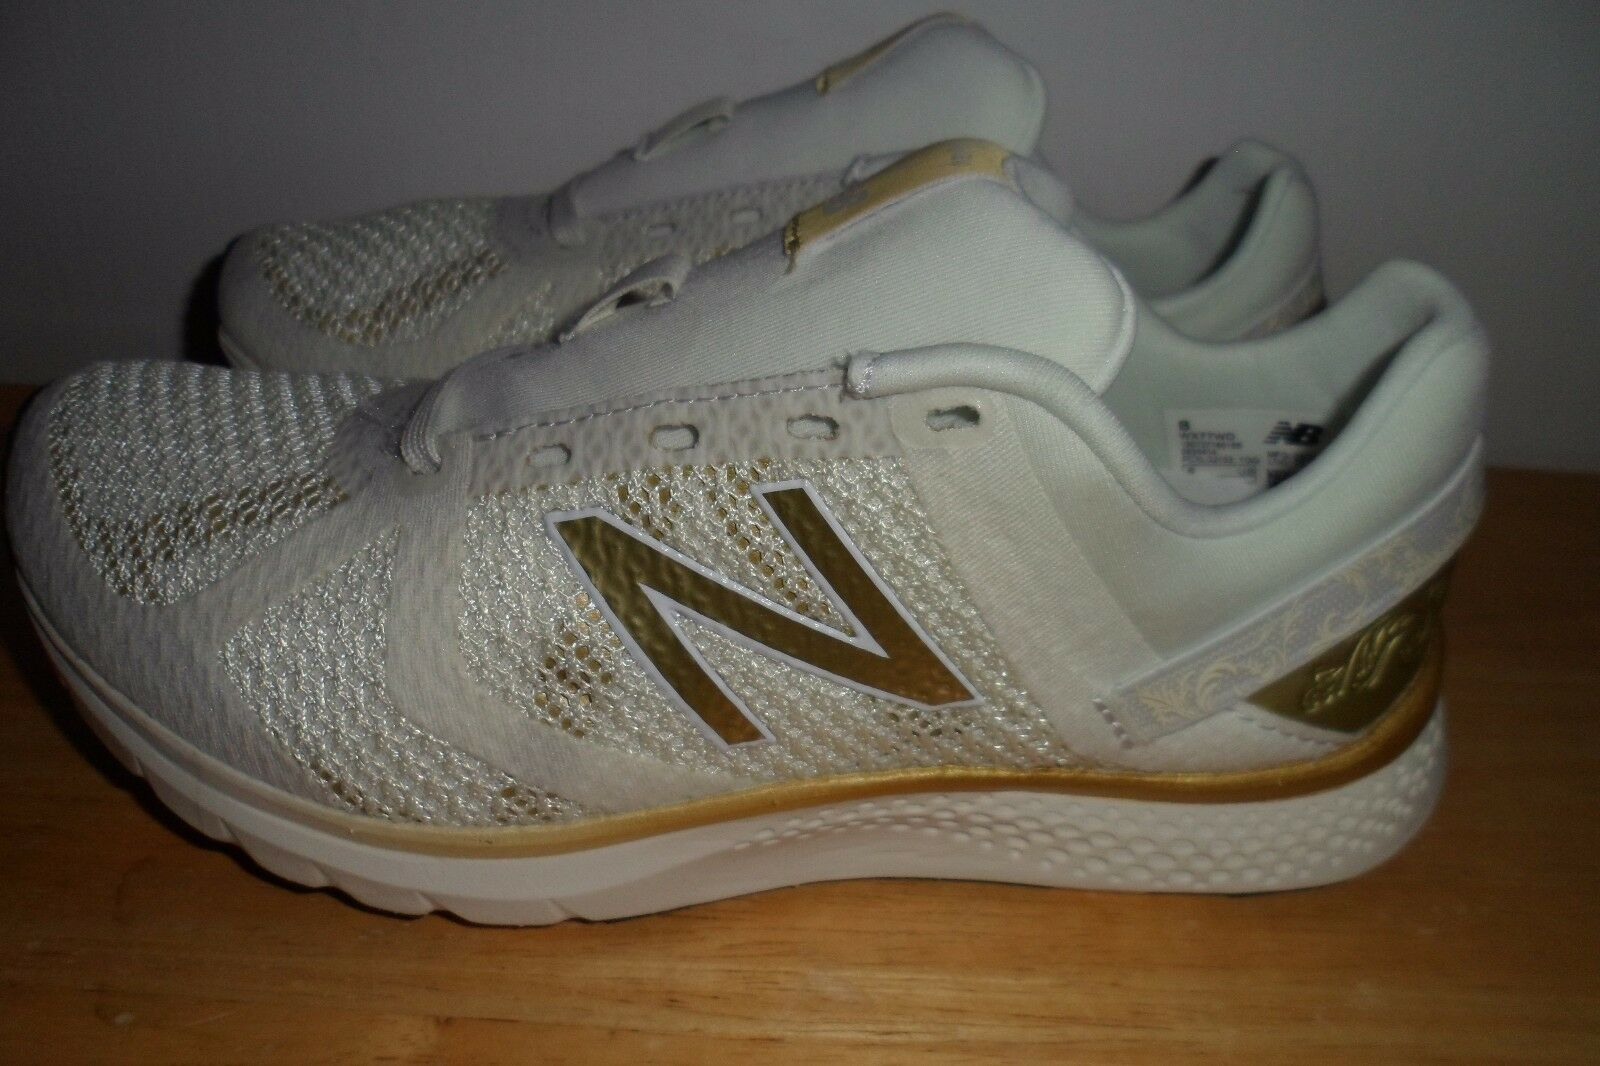 SOLD SOLD SOLD OUT NEW BALANCE BELLE OF THE BALL Disney WX77WD donna 5 B MINT CONDITION e6719a